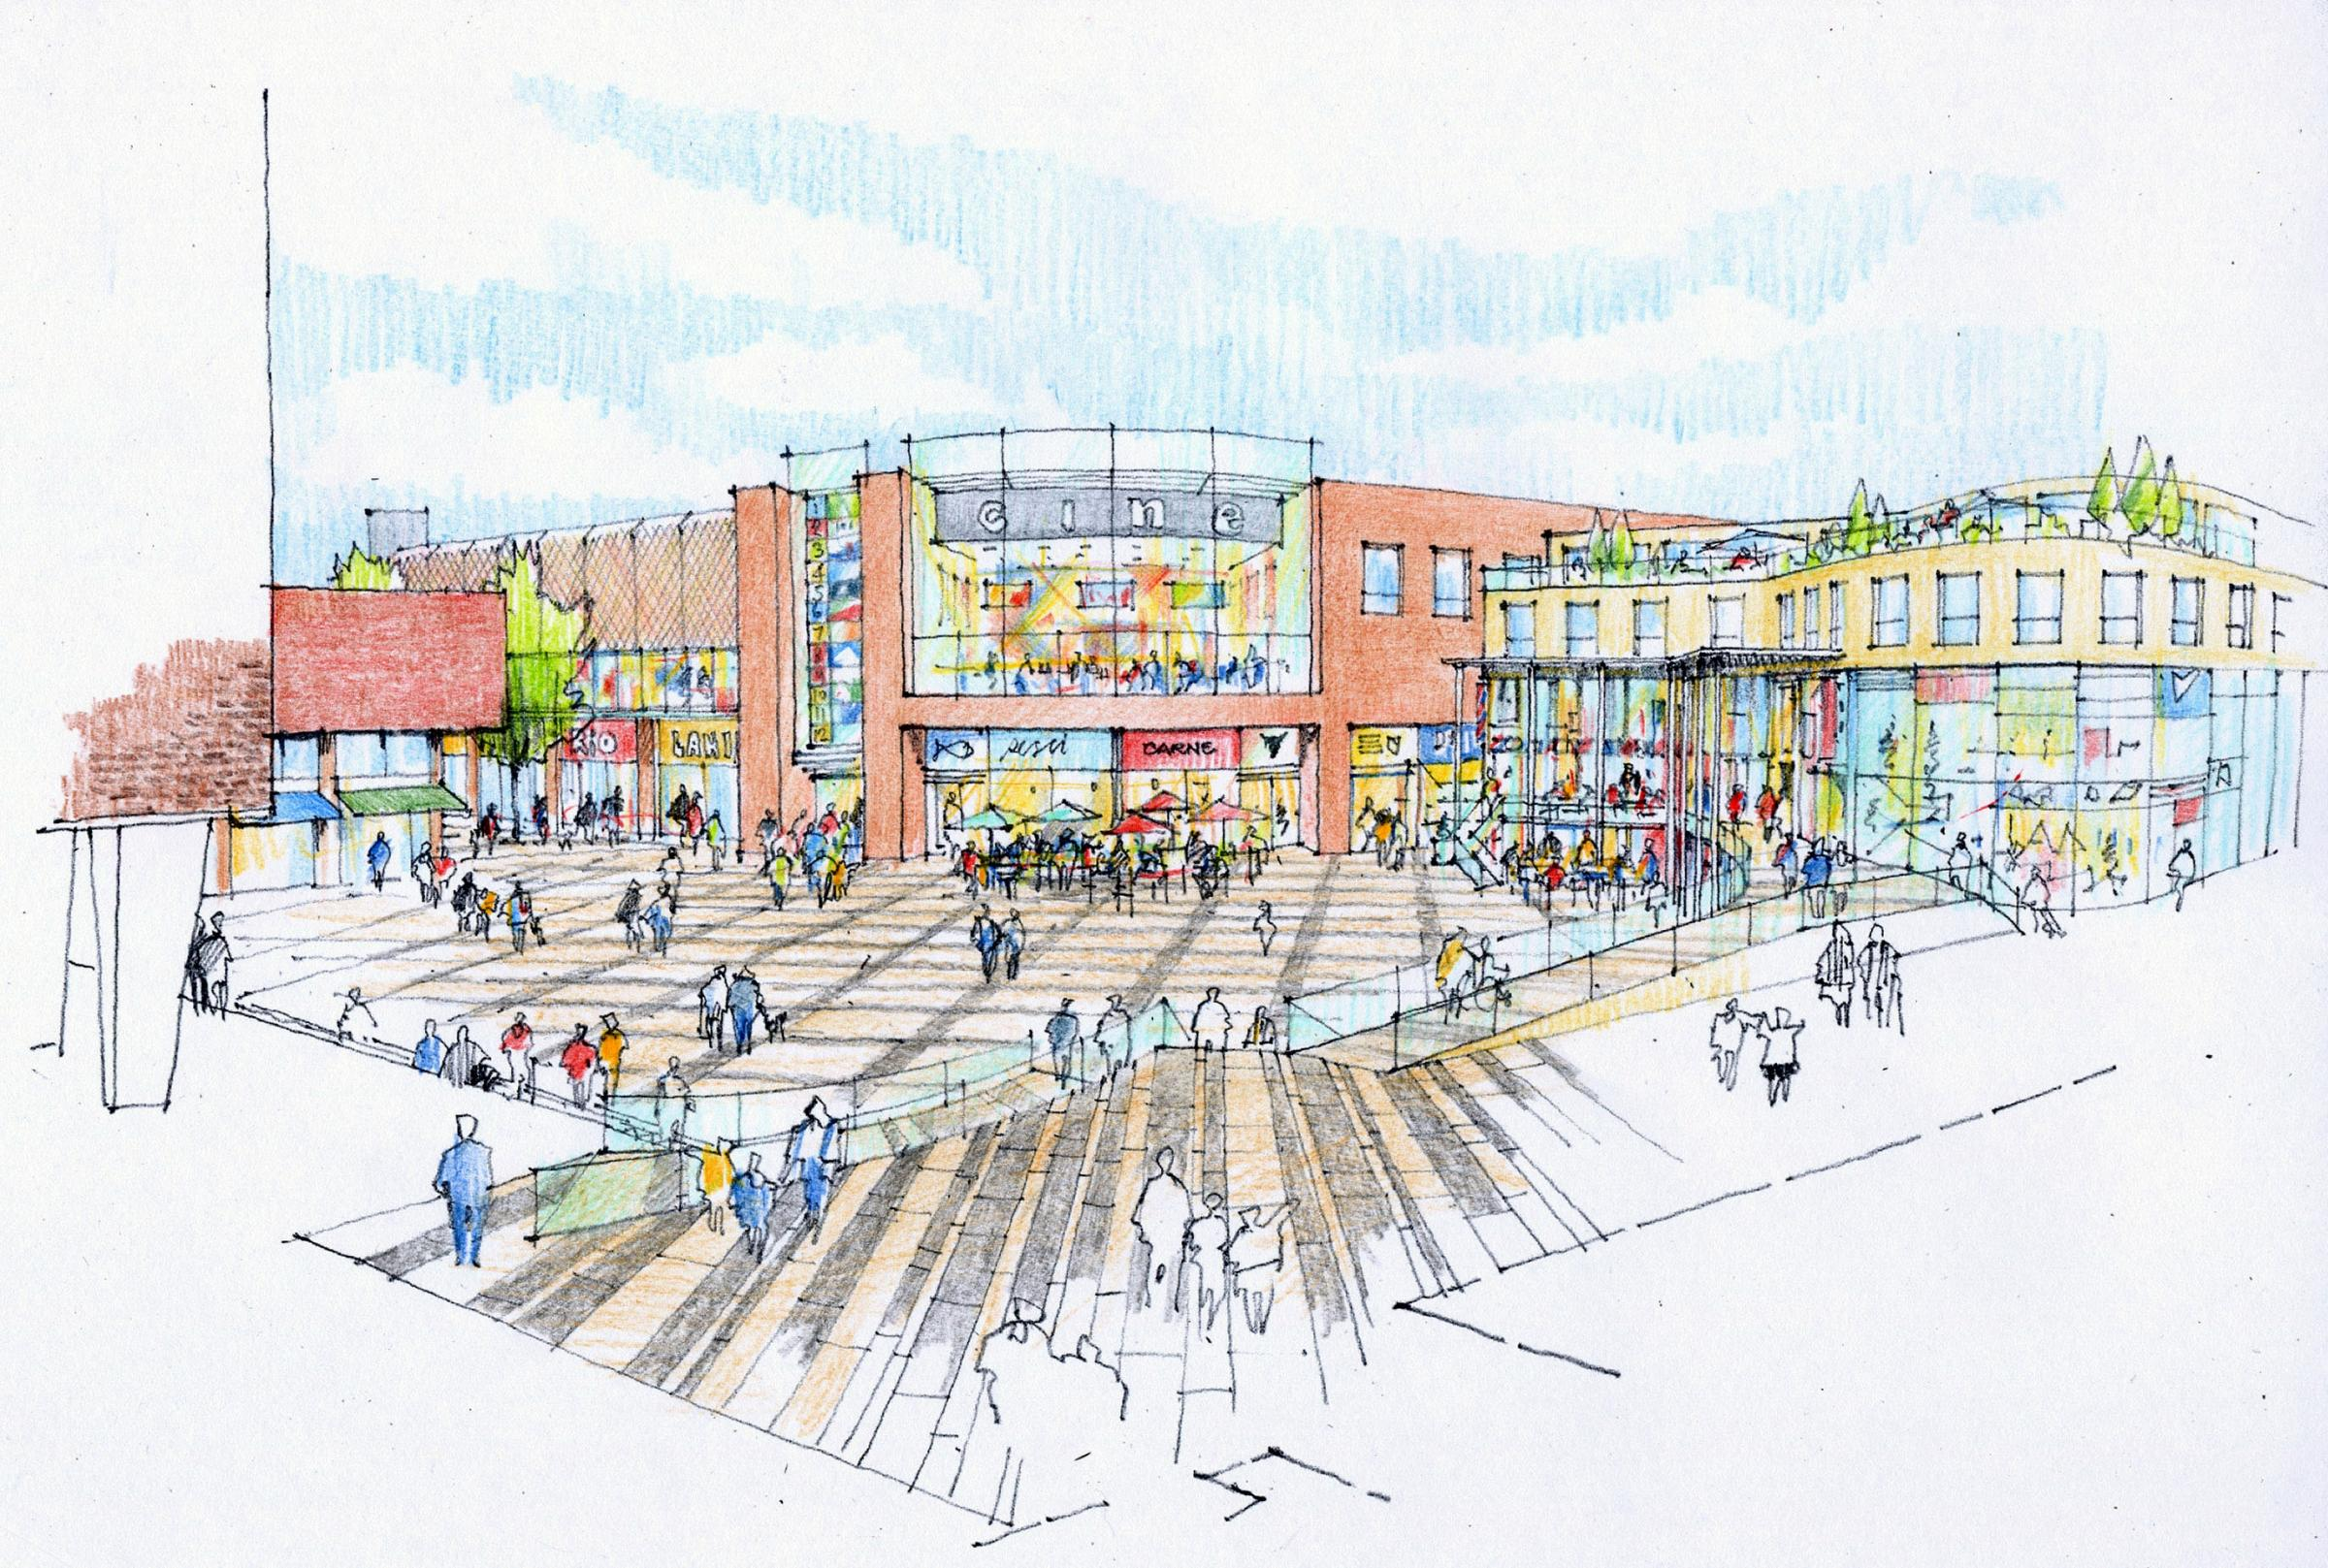 £1bn Basildon town centre plan lacks 'vision'